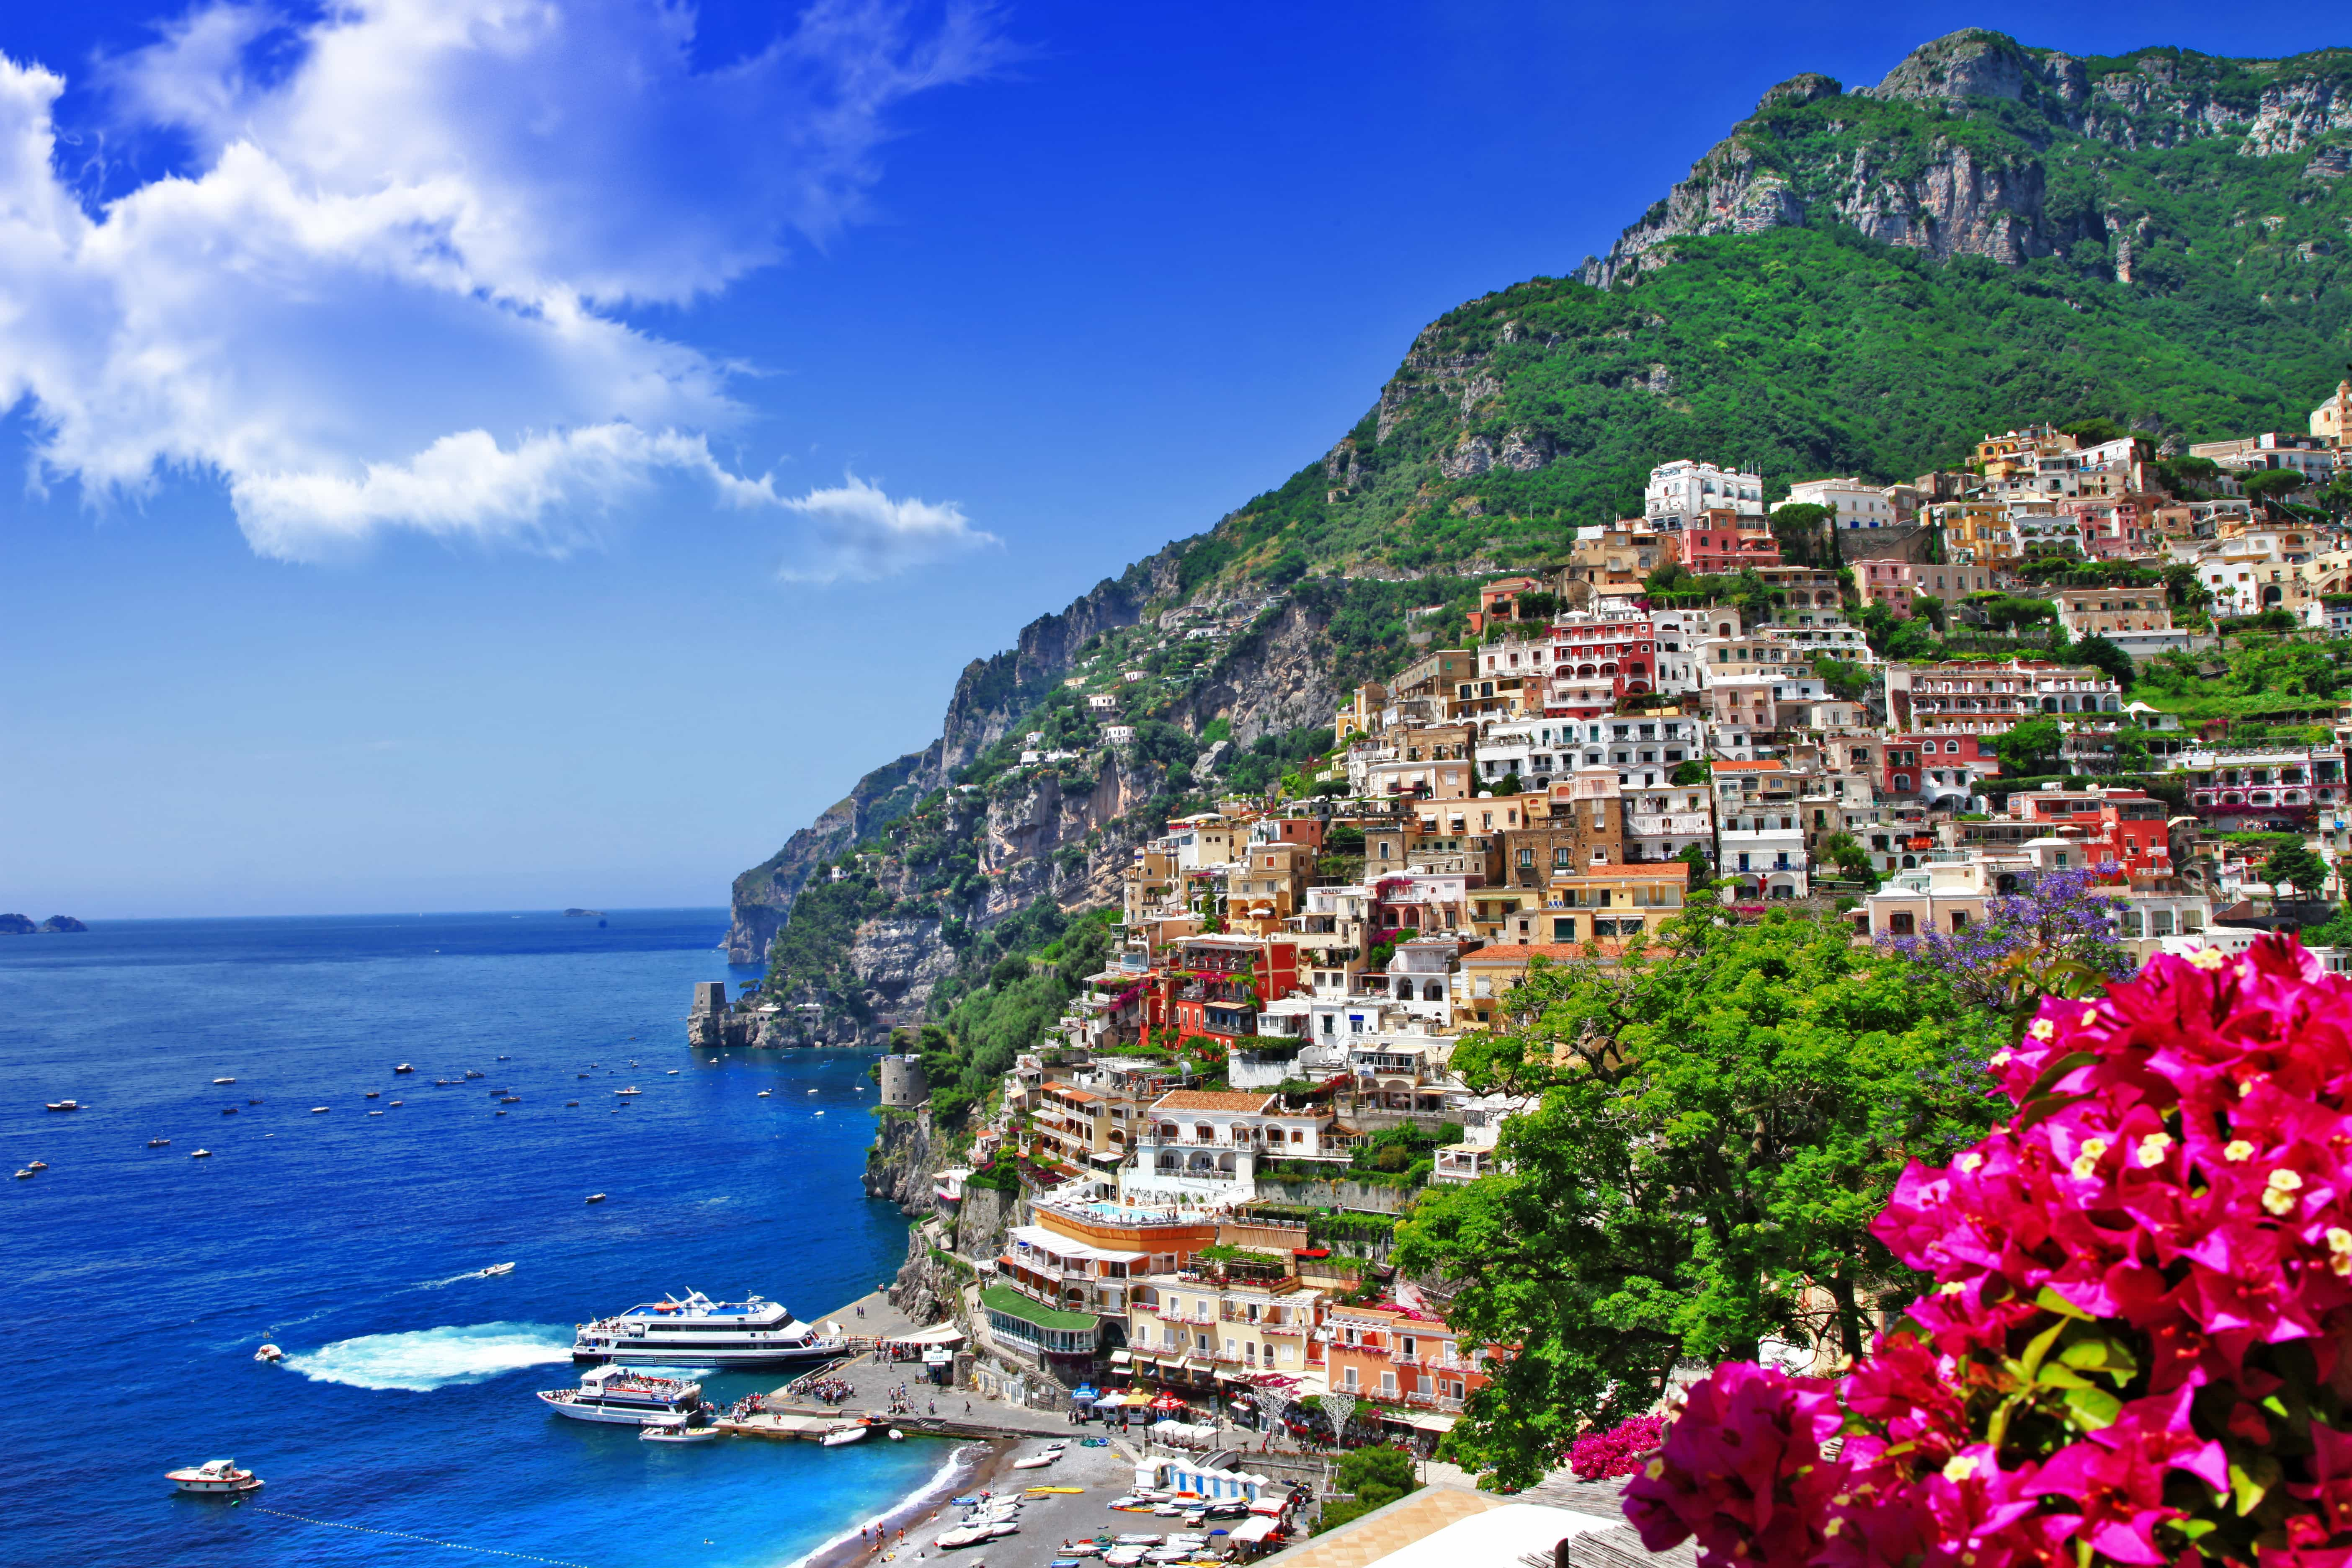 view of the Amalfi coast with colourful houses on the cliffside